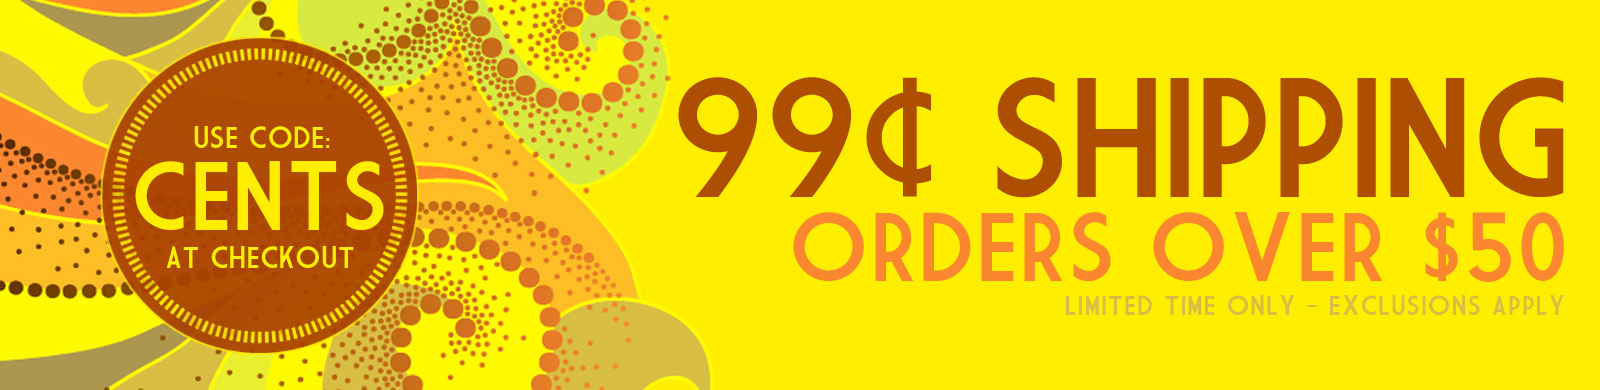 99 Cent Shipping on Most Orders Over $50